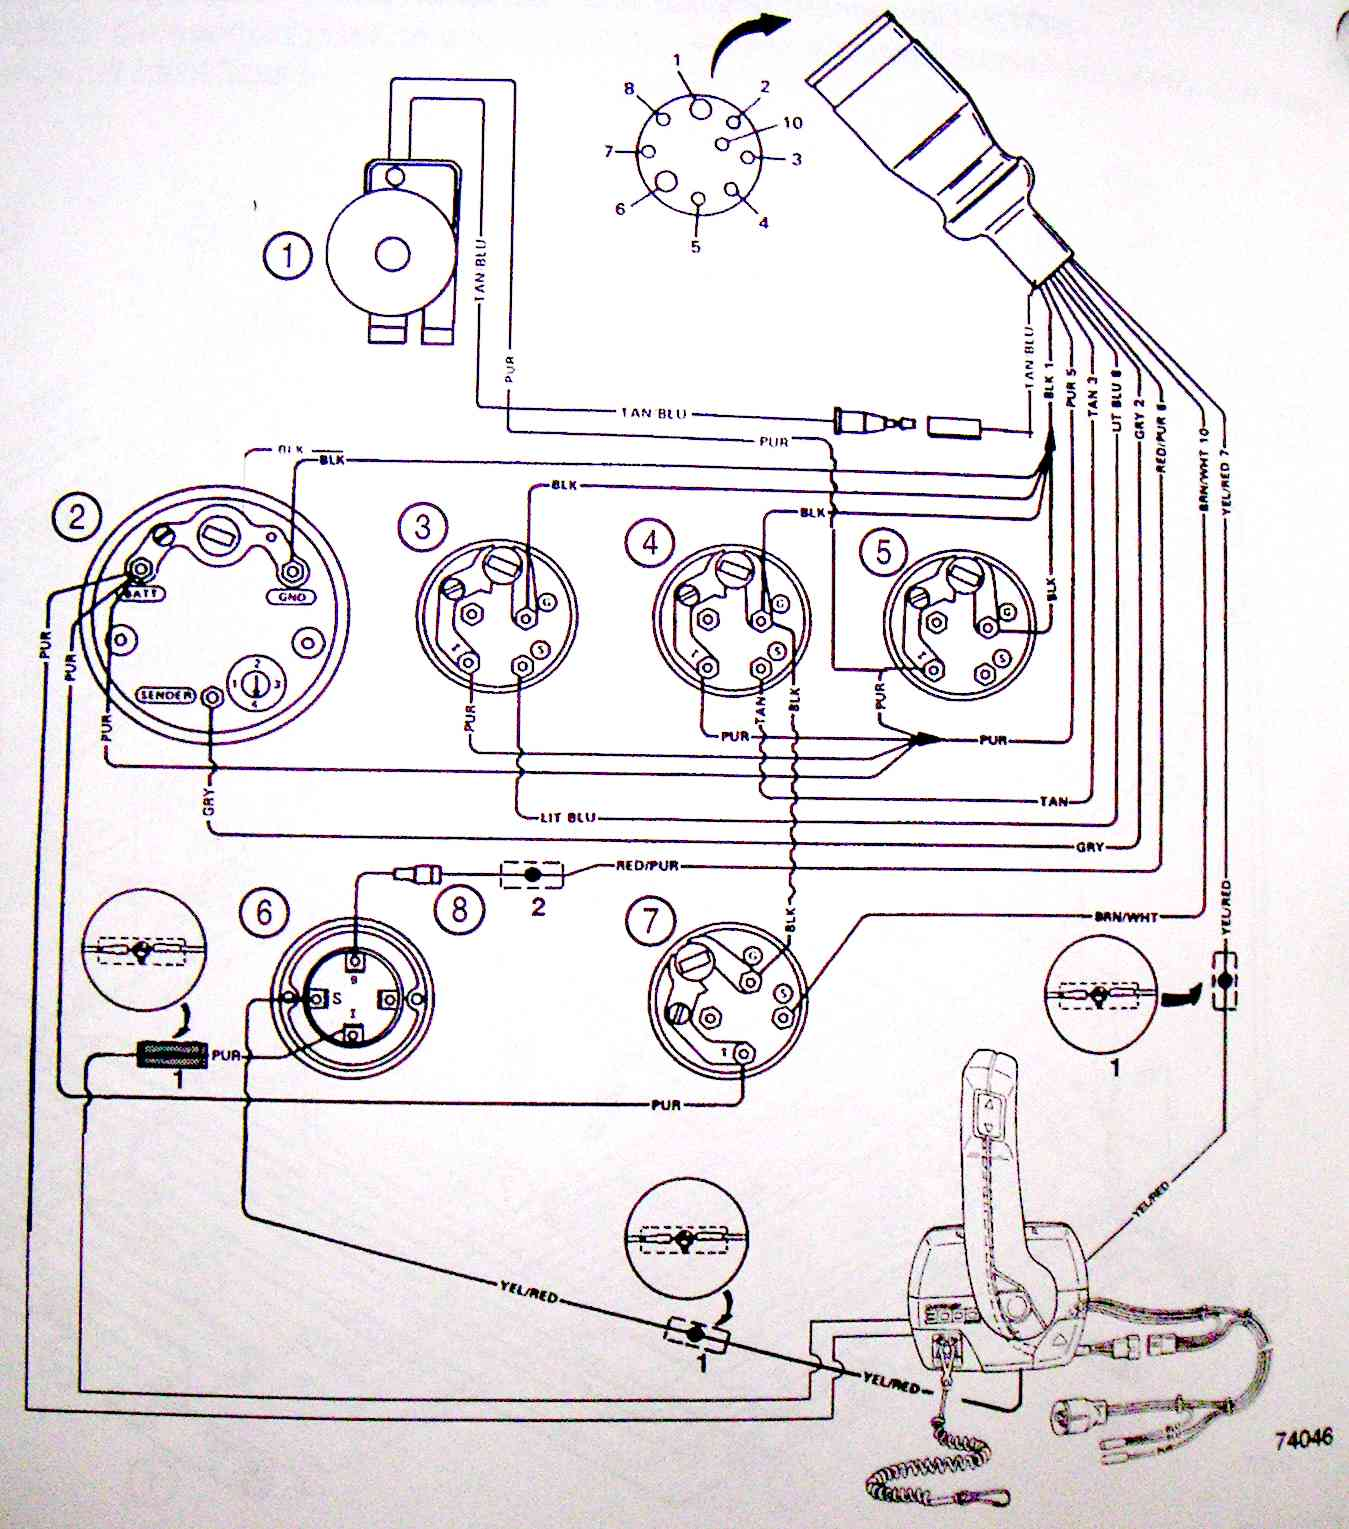 BoatHarness74046 michael's tractors (simplicity and allis chalmers garden tractors mercruiser trim gauge wiring diagram at alyssarenee.co